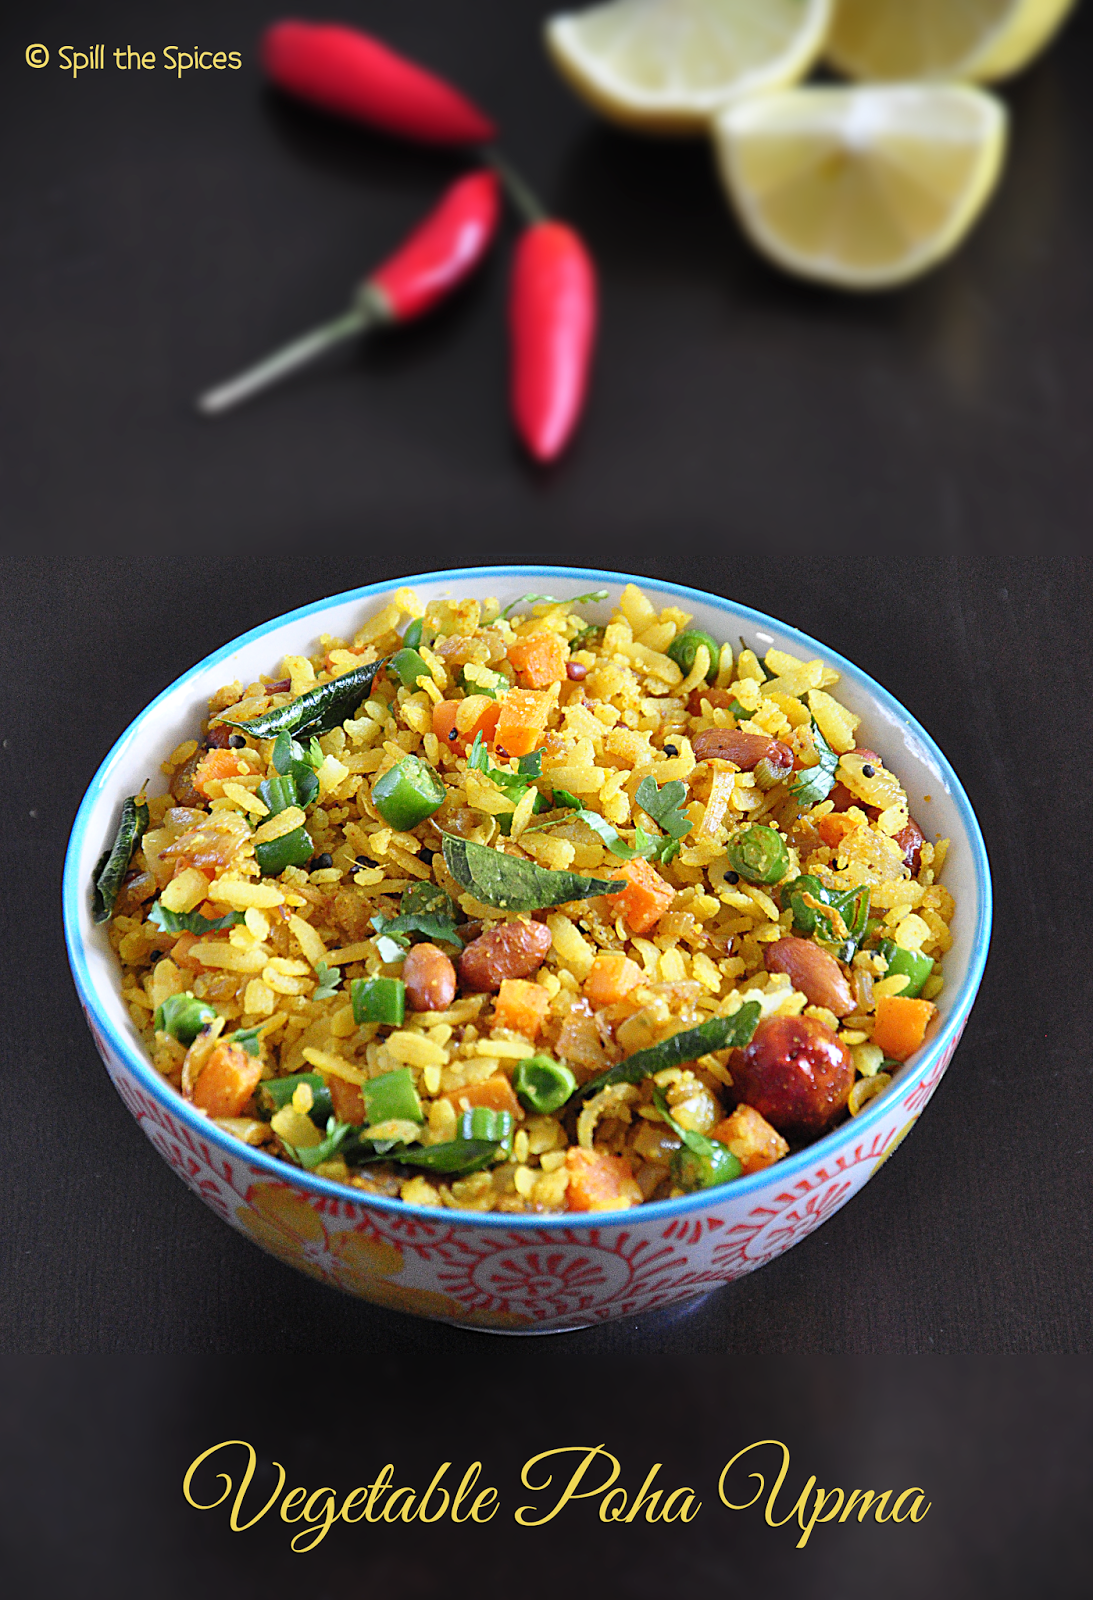 Vegetable Poha Upma | Masala Aval Upma